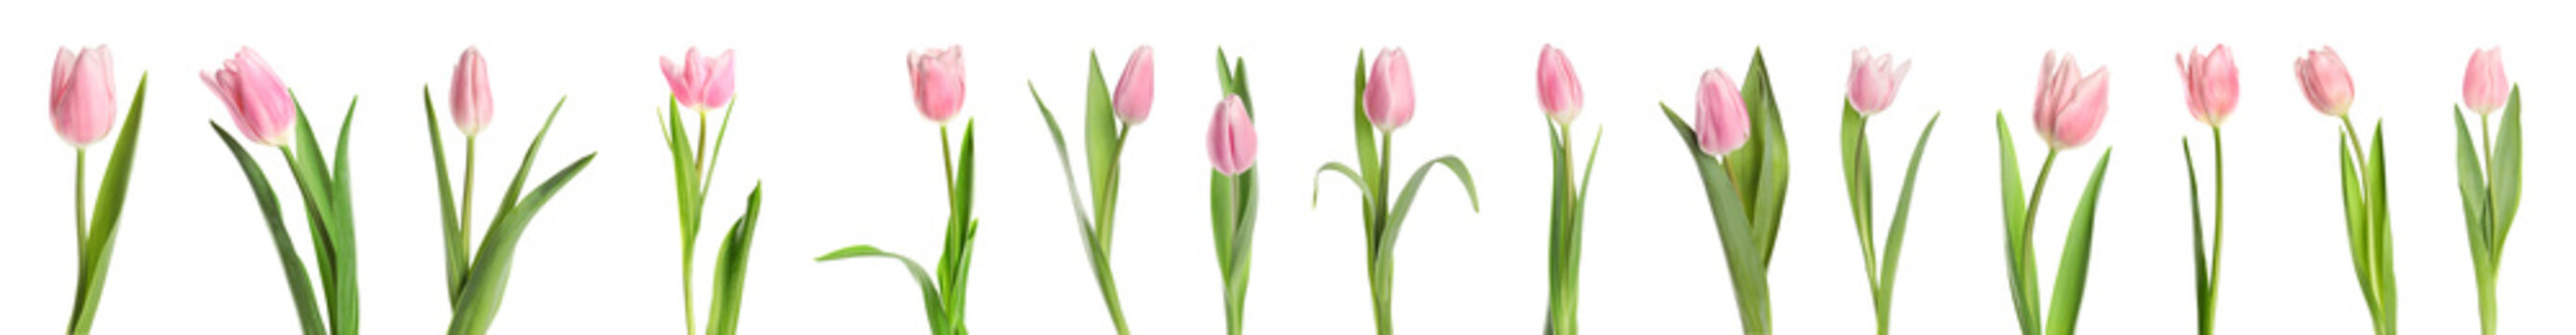 Set of beautiful spring tulips on white background. Banner design